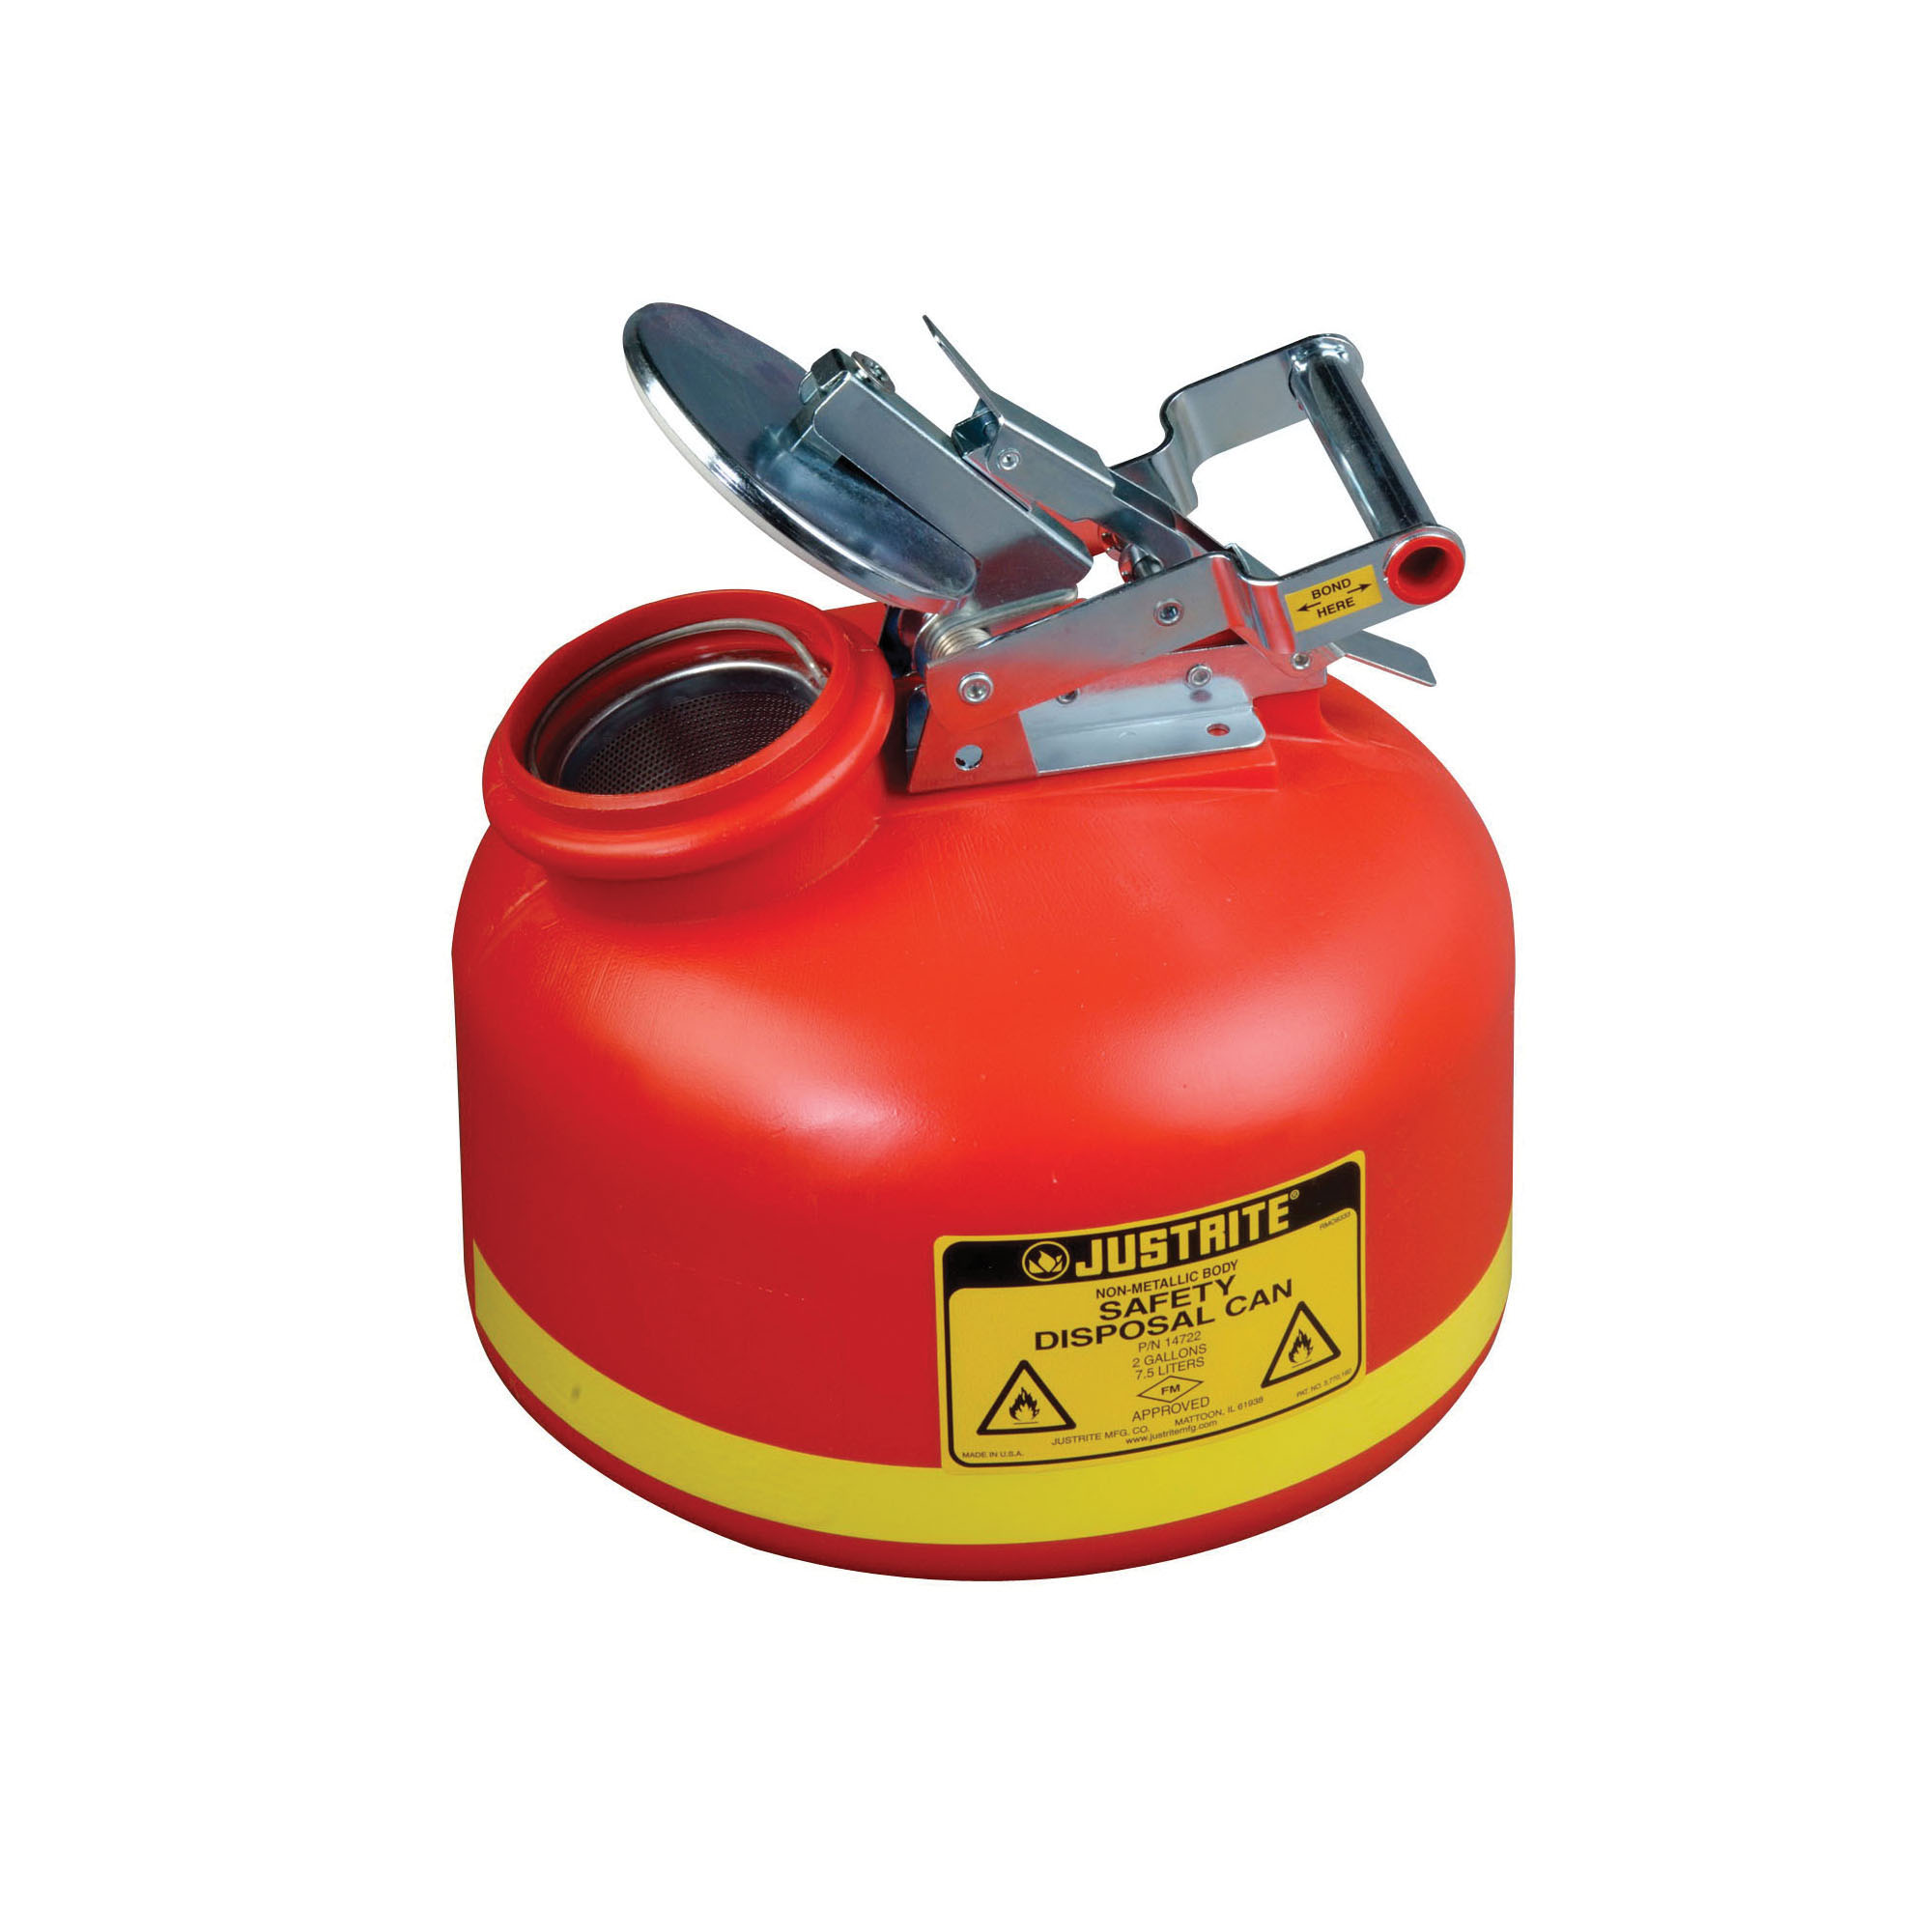 Justrite® 14762 Liquid Disposal Safety Can With Stainless Steel Hardware, 2 gal Capacity, 12 in Dia, 14-3/4 in H, Polyethylene, Red, FM Approved, OSHA Approved, NFPA 30